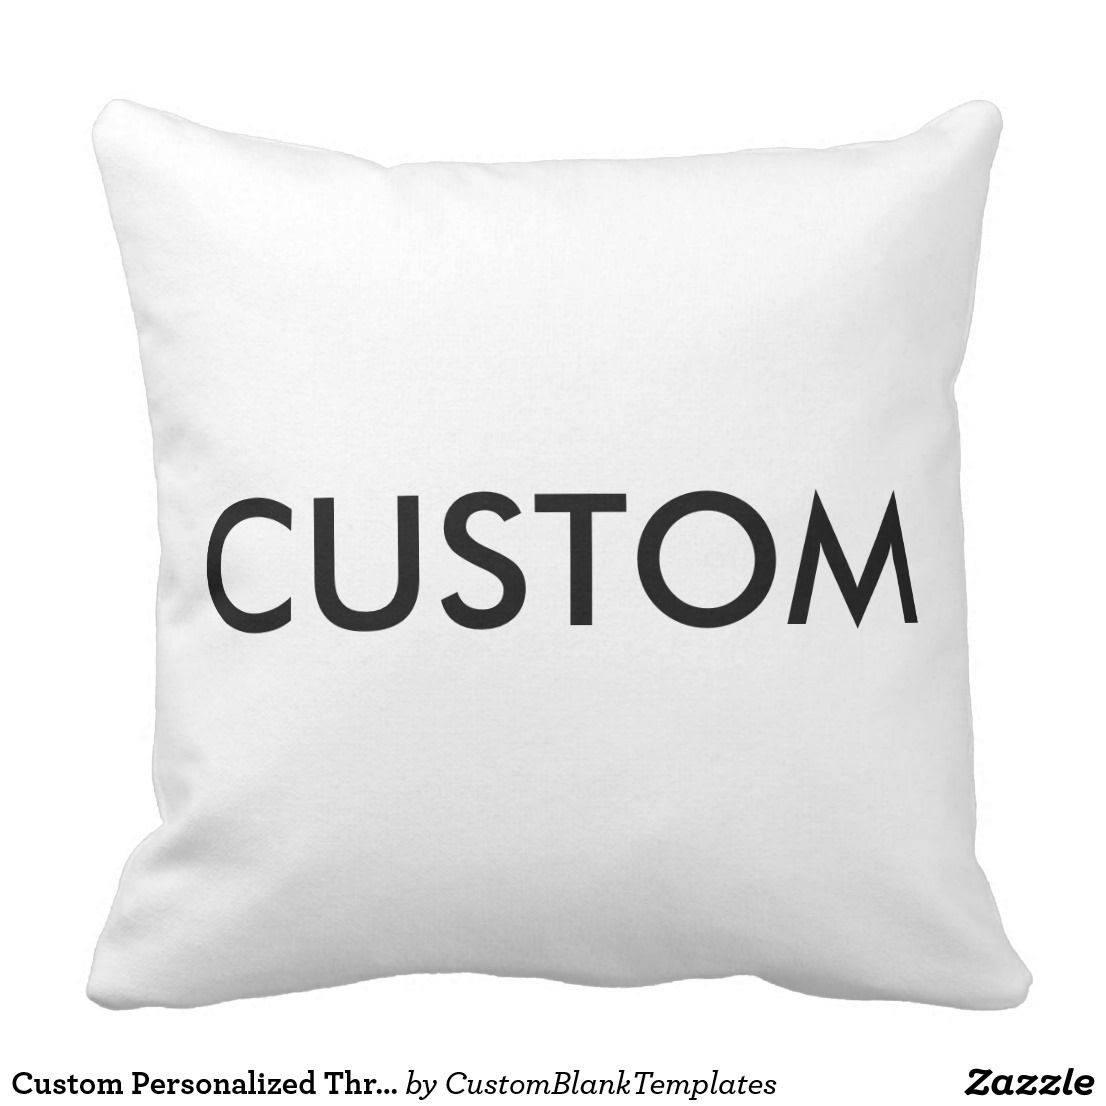 Custom Personalized Throw Pillow Blank Template | Custom ...